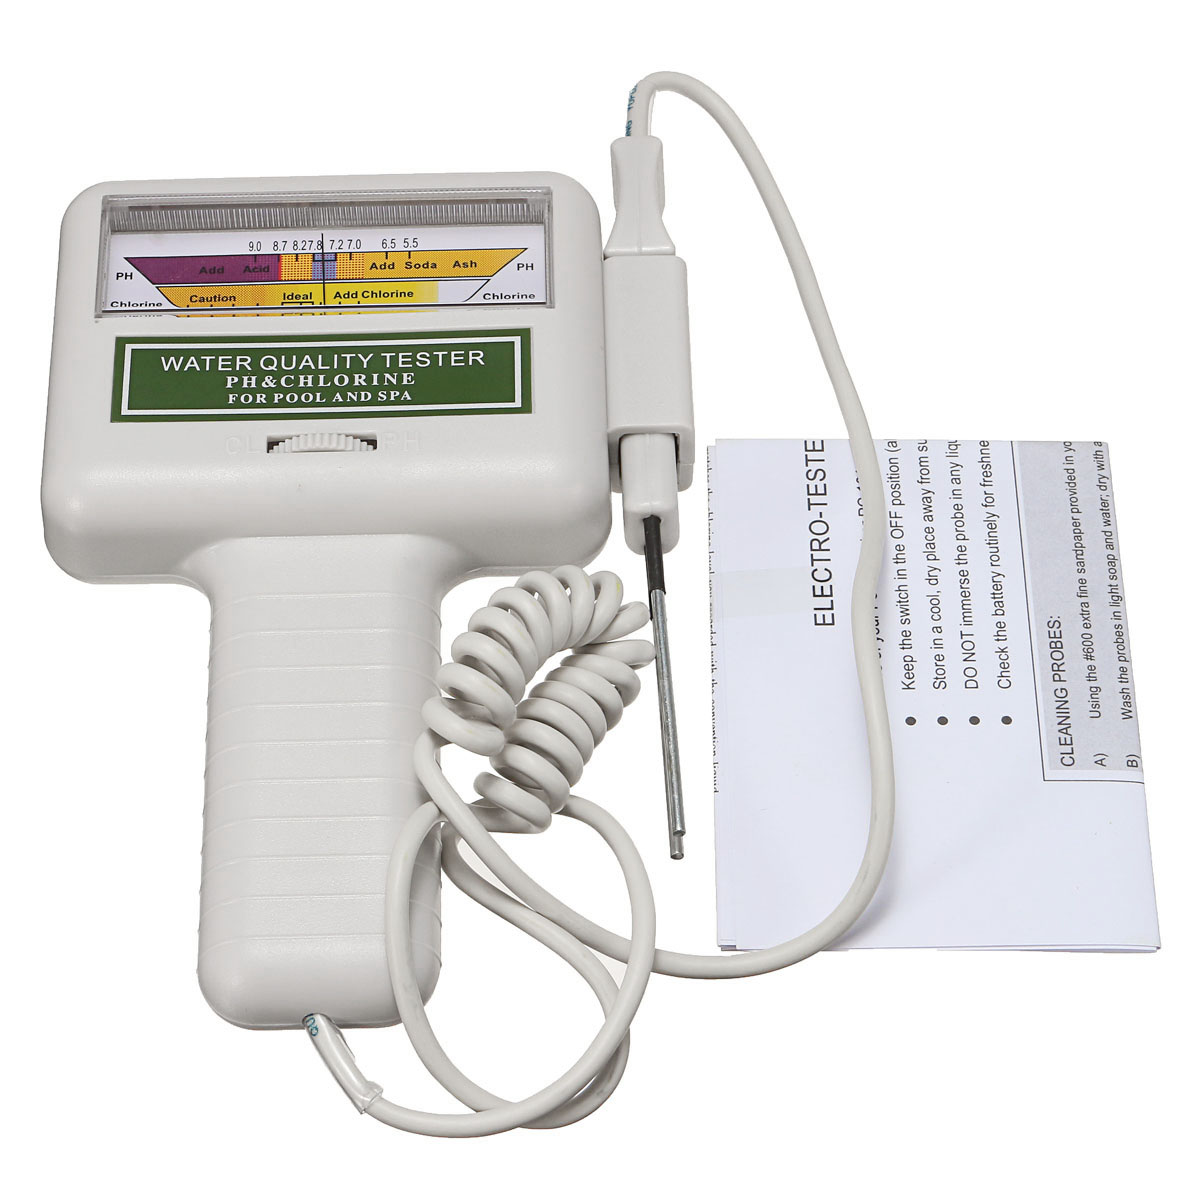 PC101 Water Quality Tester PH CL2 Chlorine Level Meter Monitor Swimming Pool Spa Tester